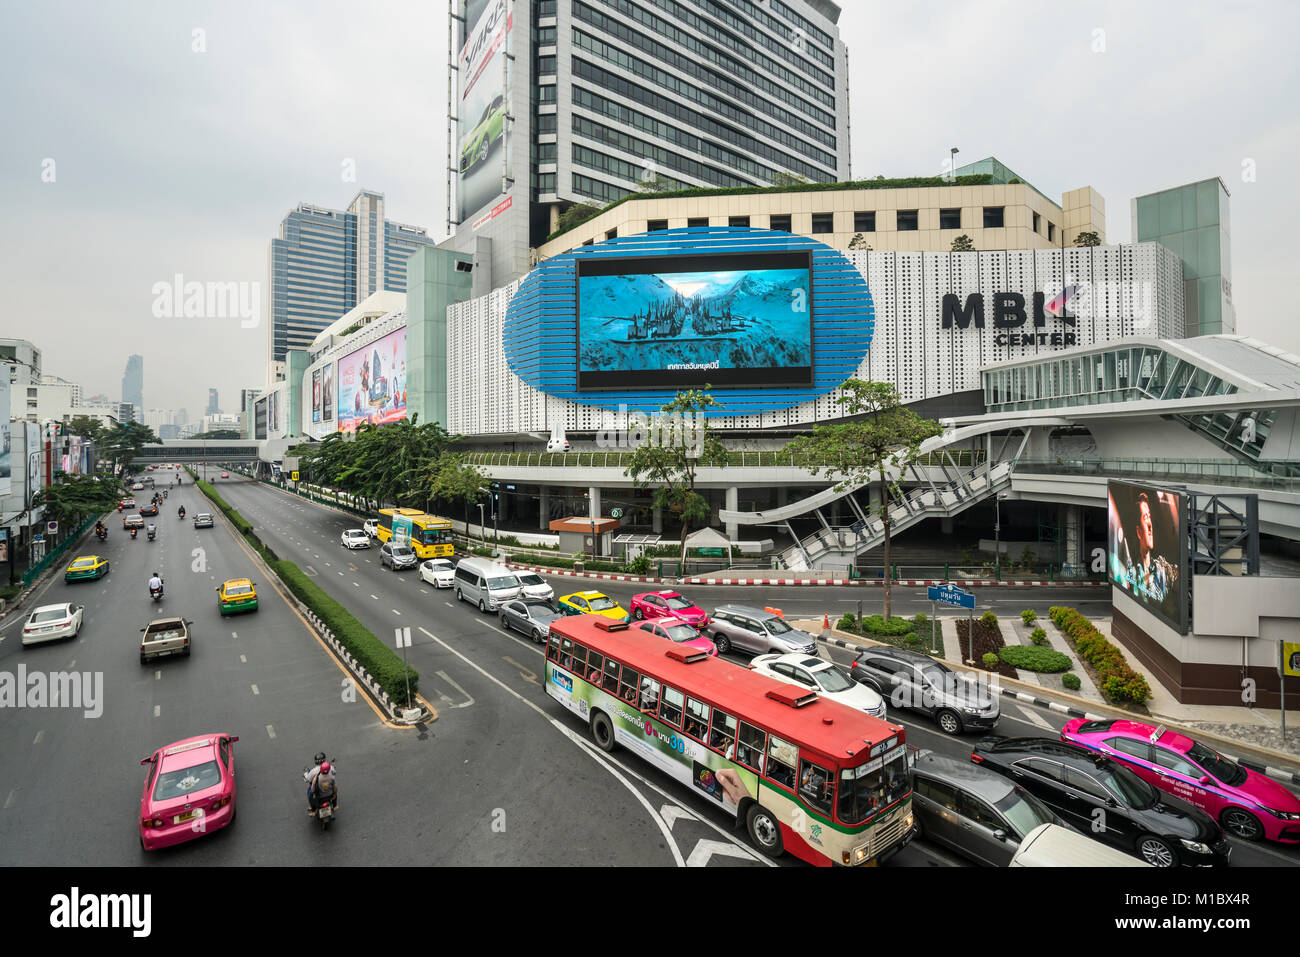 a view of the flyovers in Siam Square in Bangkok, Thailand - Stock Image